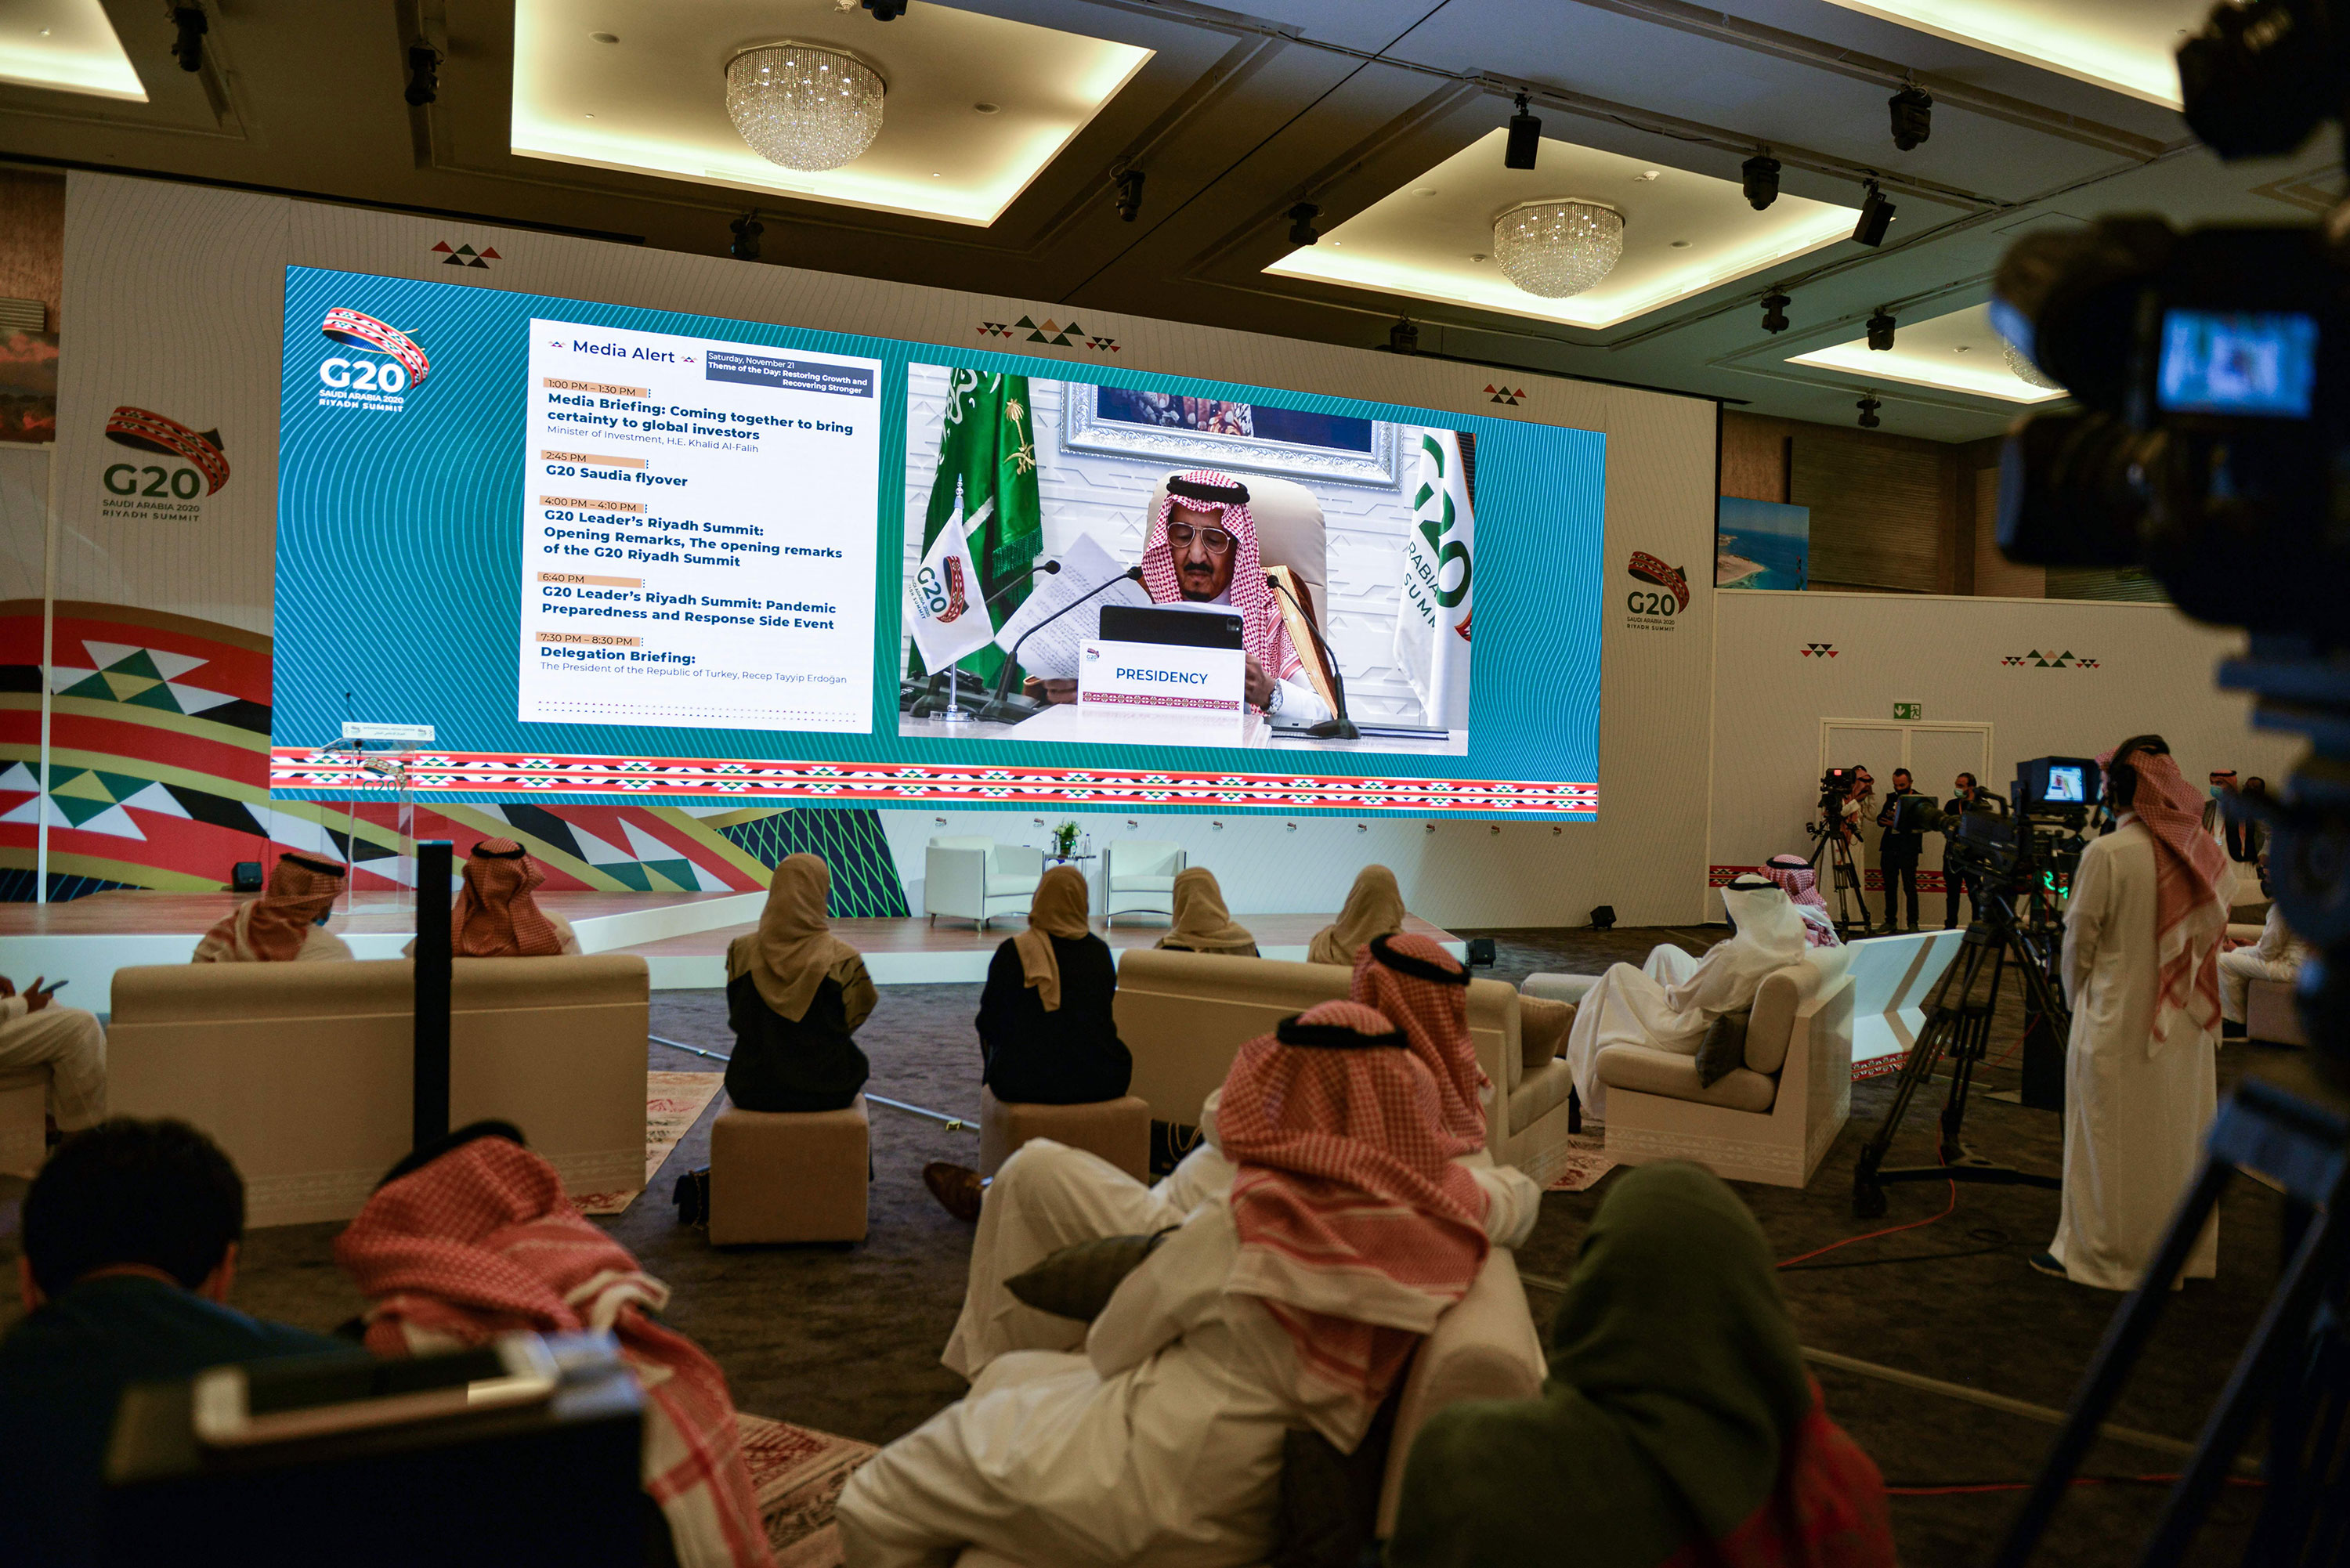 Members of the media watch on a projected screen at the International Media Centre in Saudi Arabia